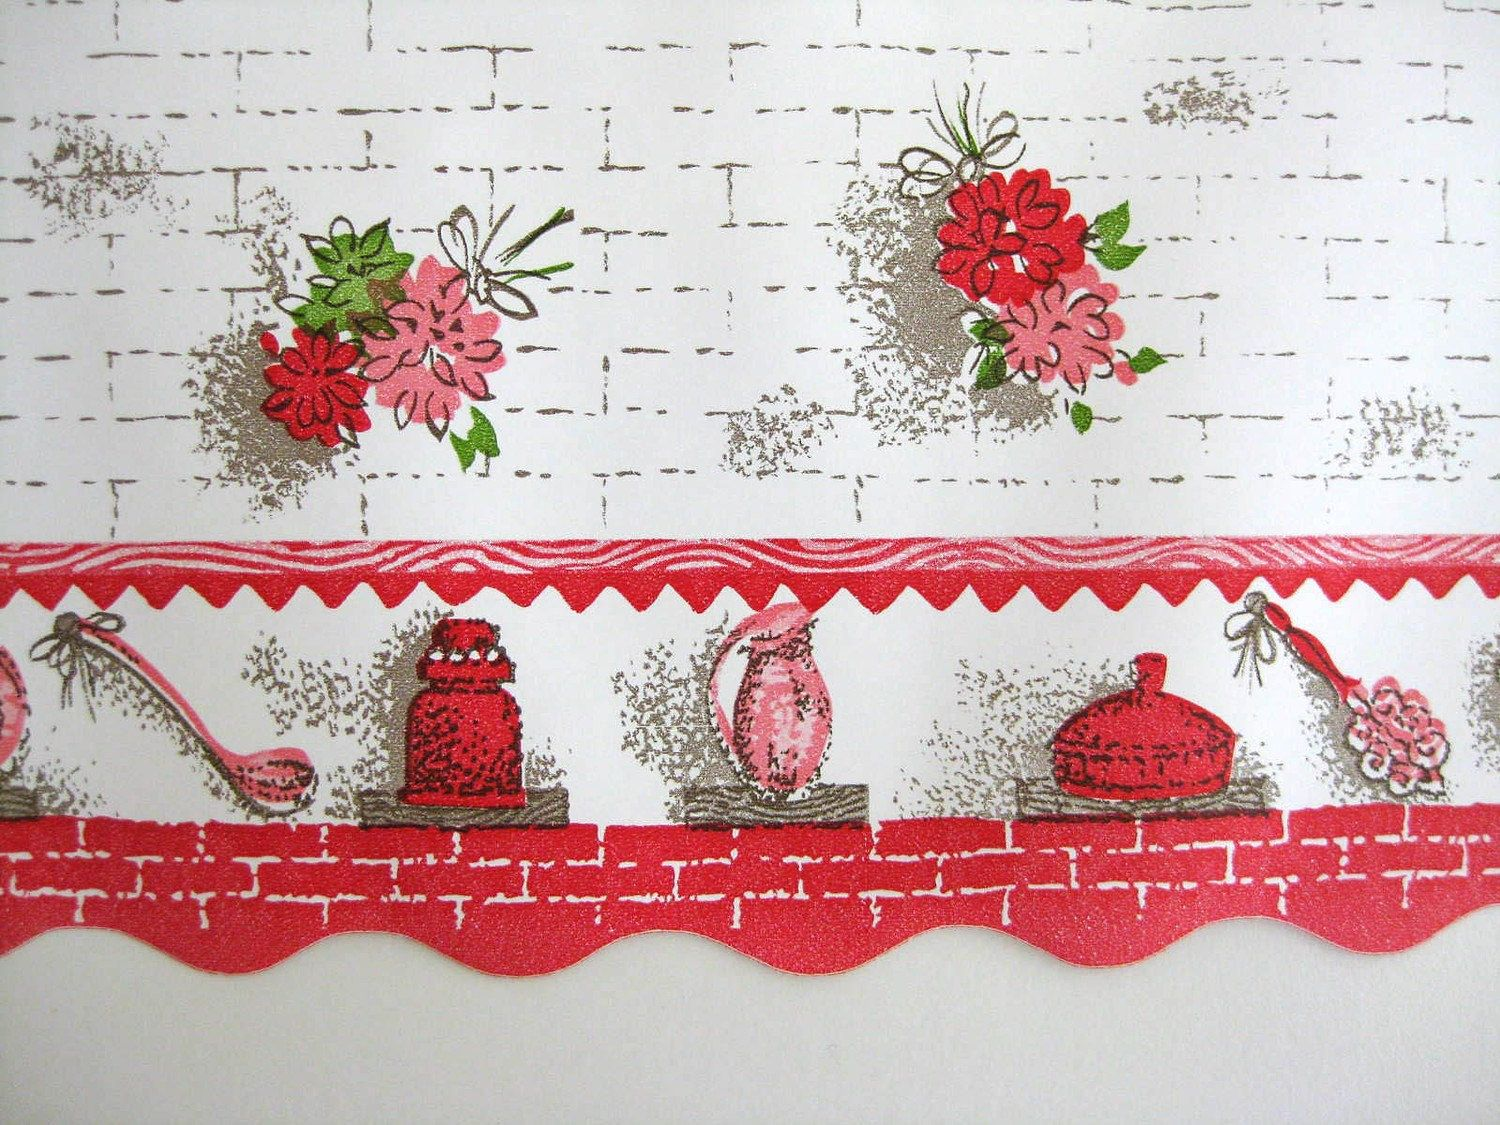 Floral Kitchen Wallpaper Border (Wide Unused Roll) SALE